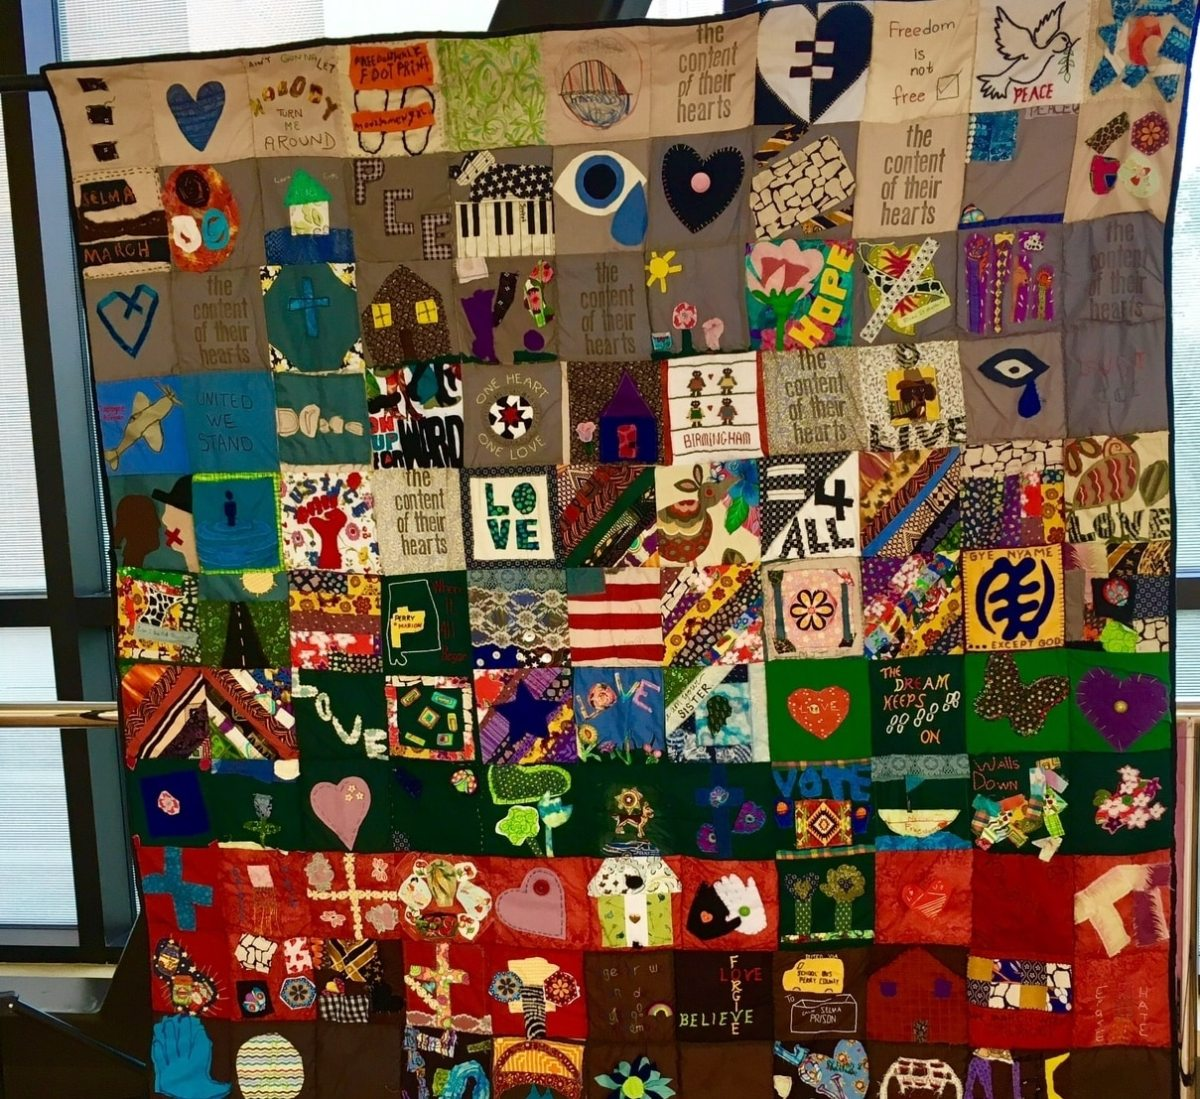 Nature and environmental justice chosen for 2018 March Quilts theme